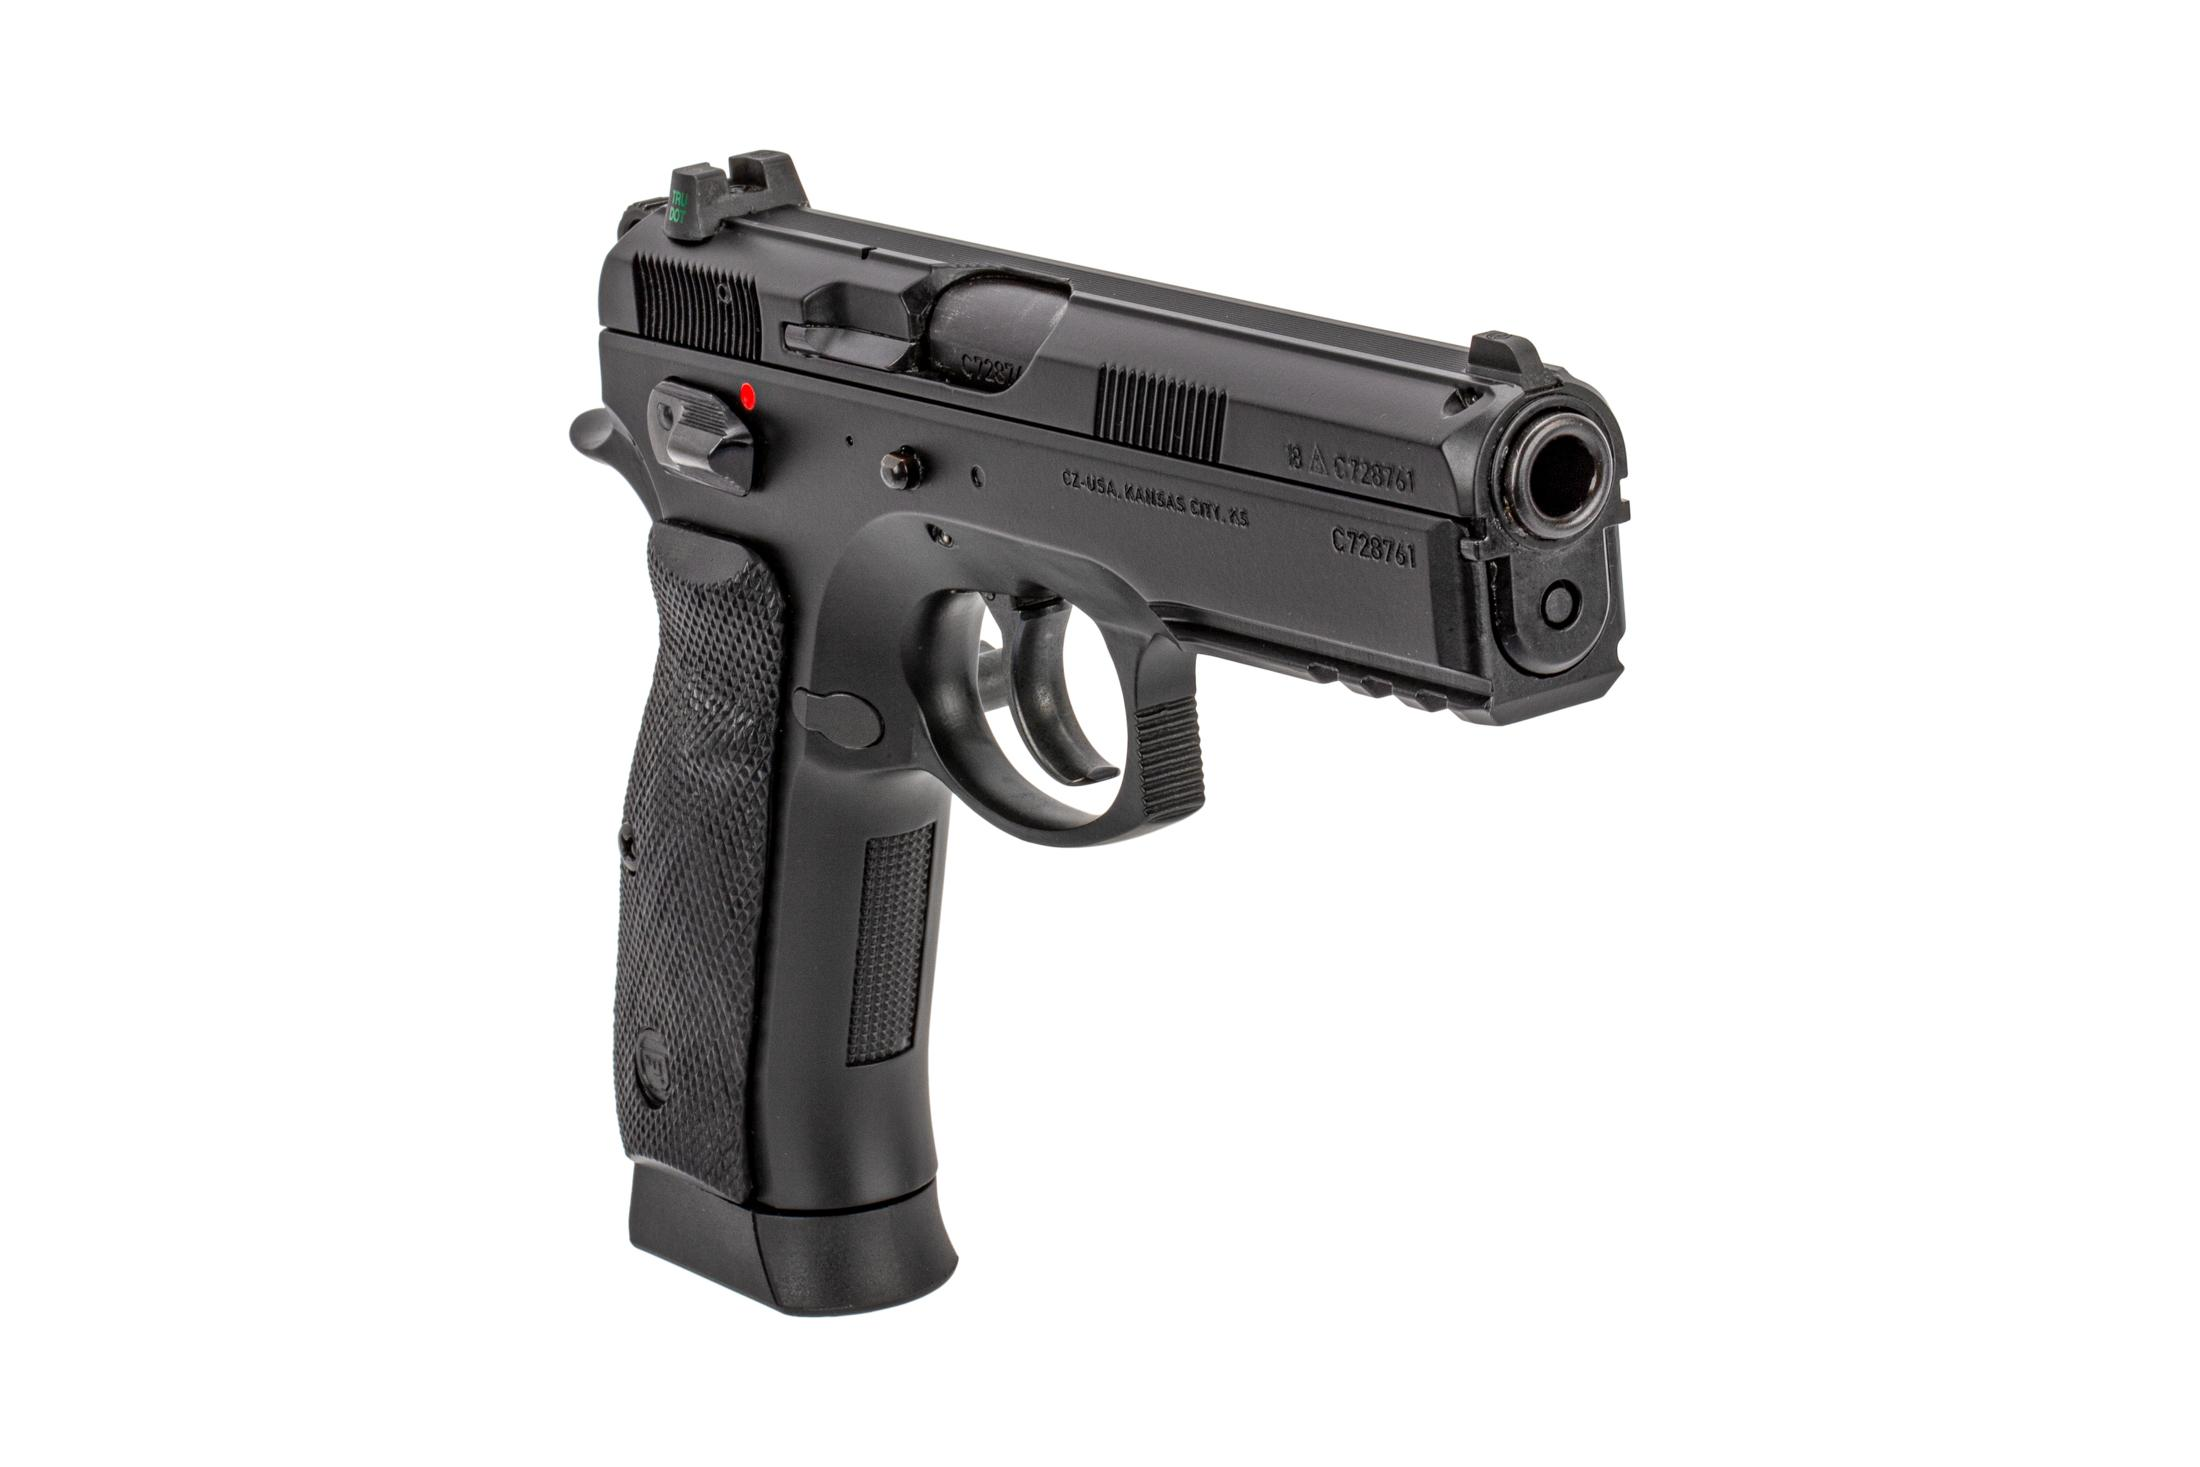 CZ-75 SP-01 full size pistol with Tru Dot night sights and full length accessory rail is chambered in 9mm Luger